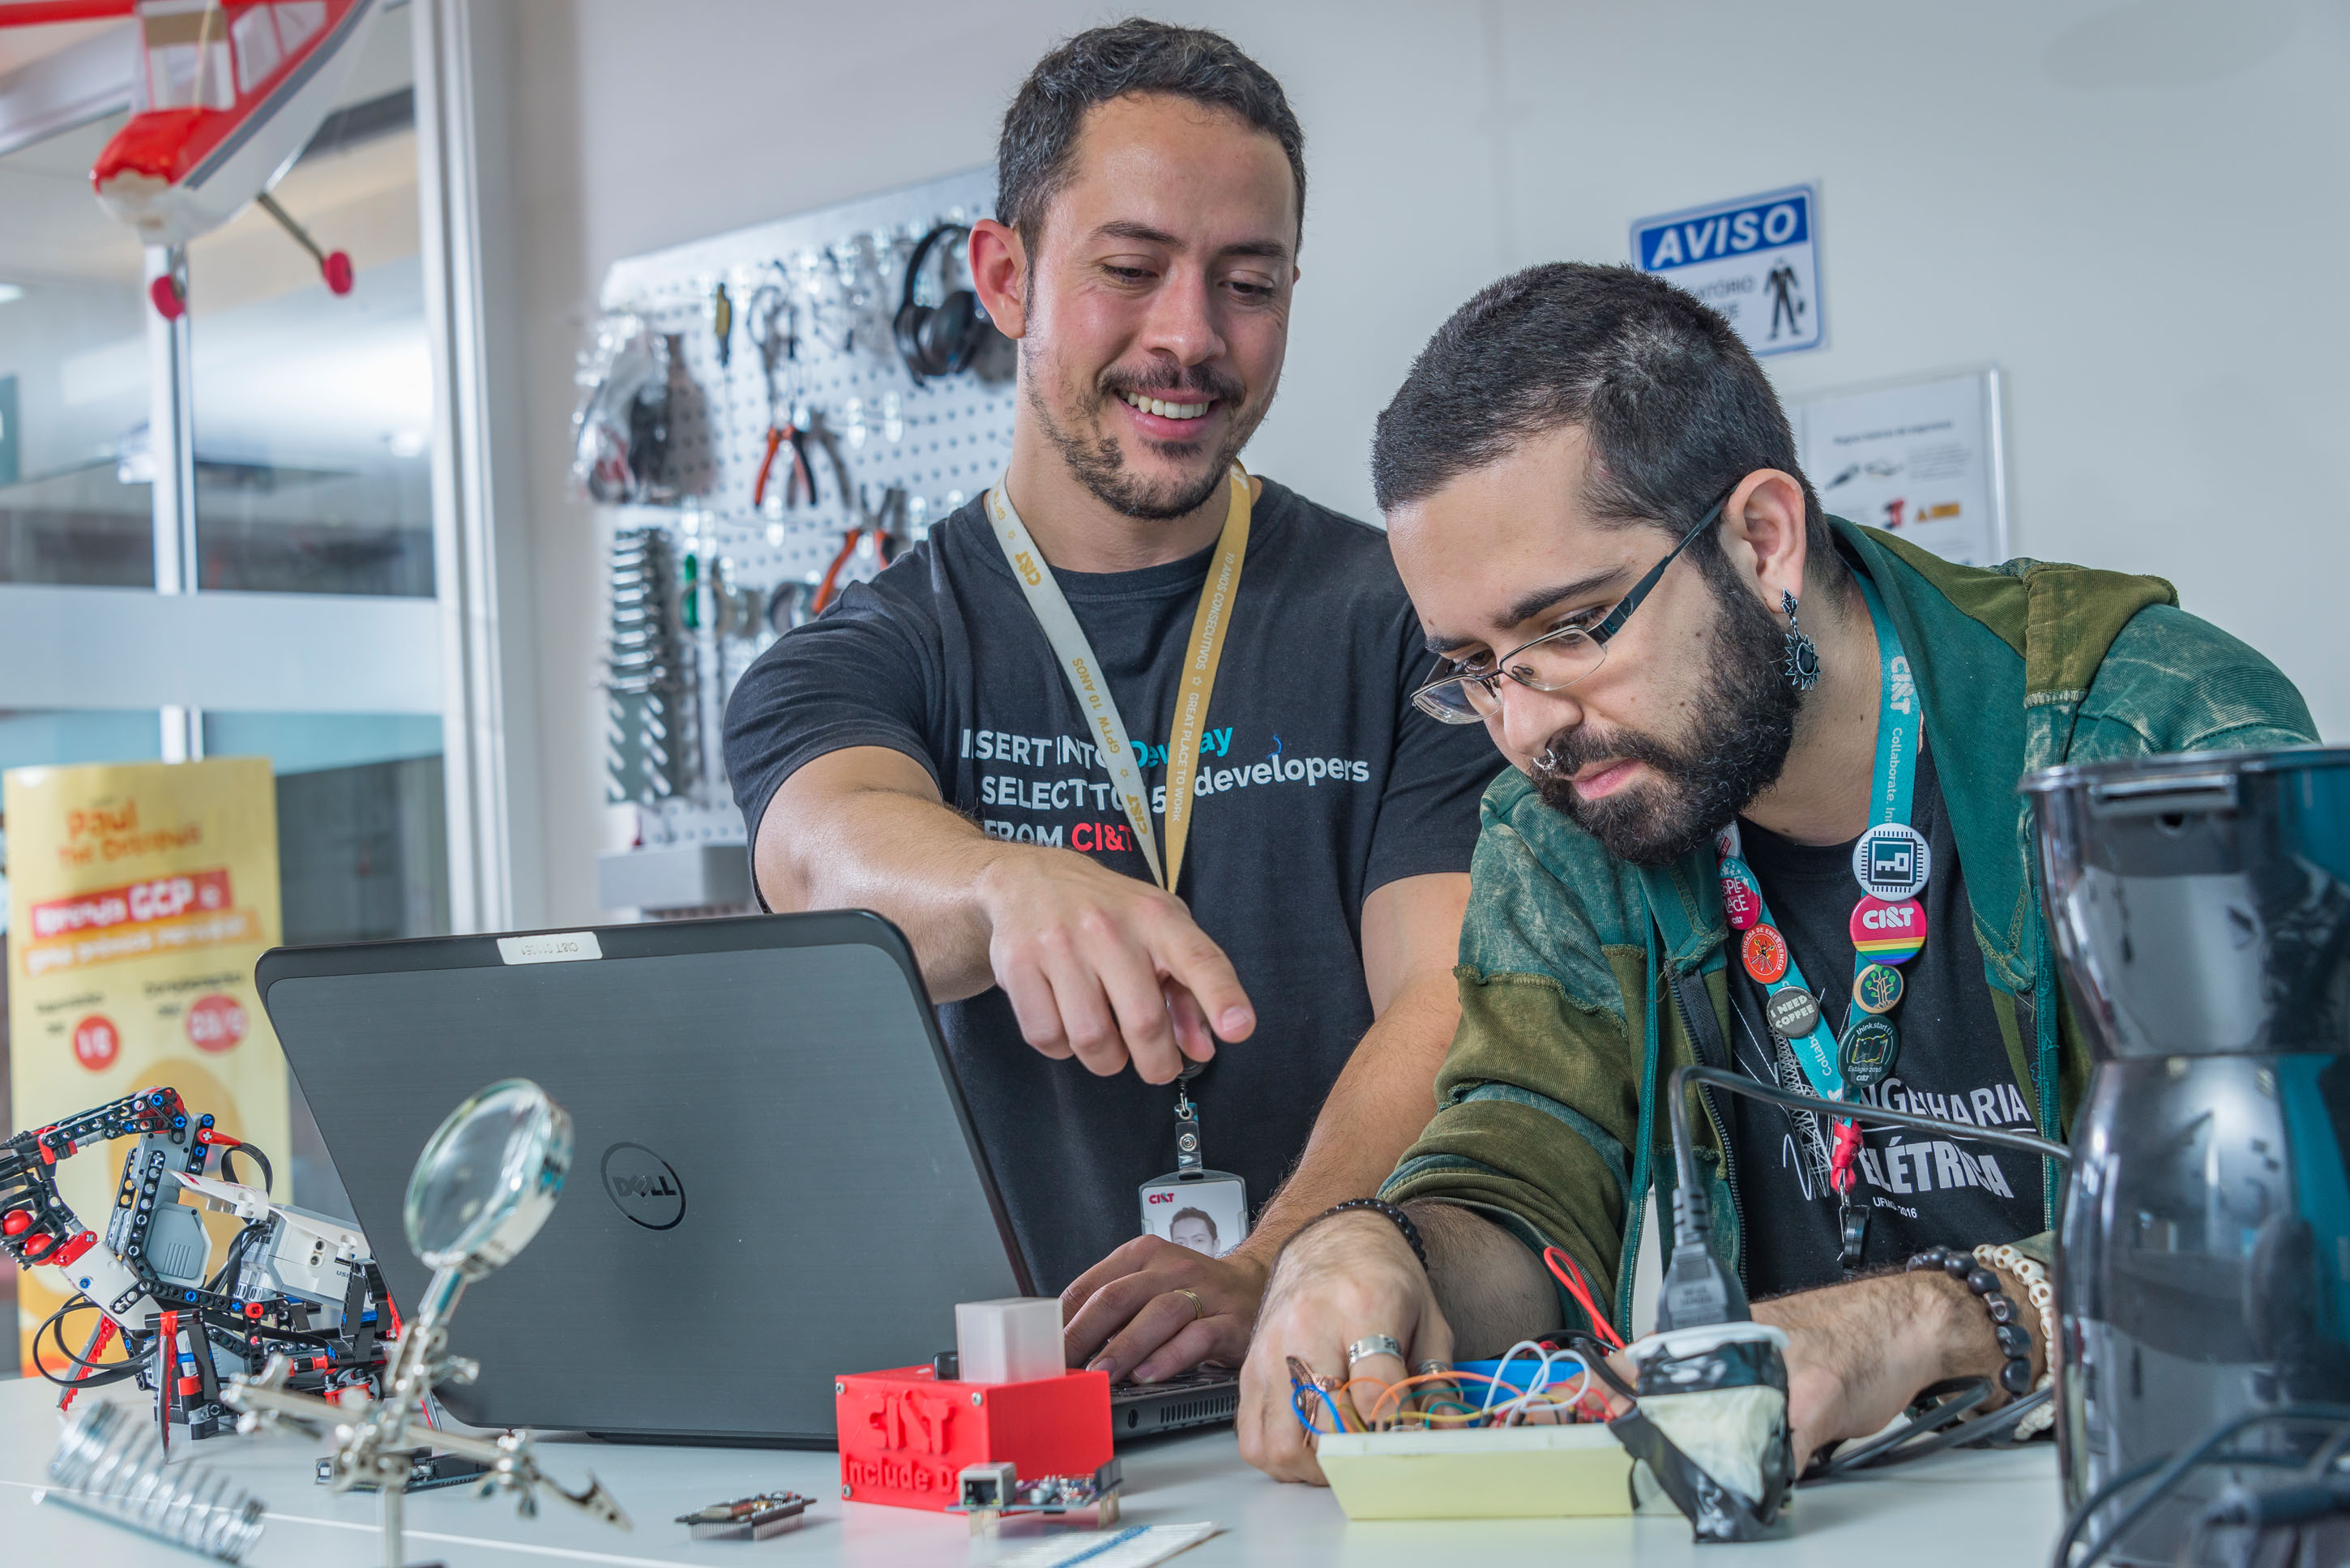 CI&T employees working with IoT